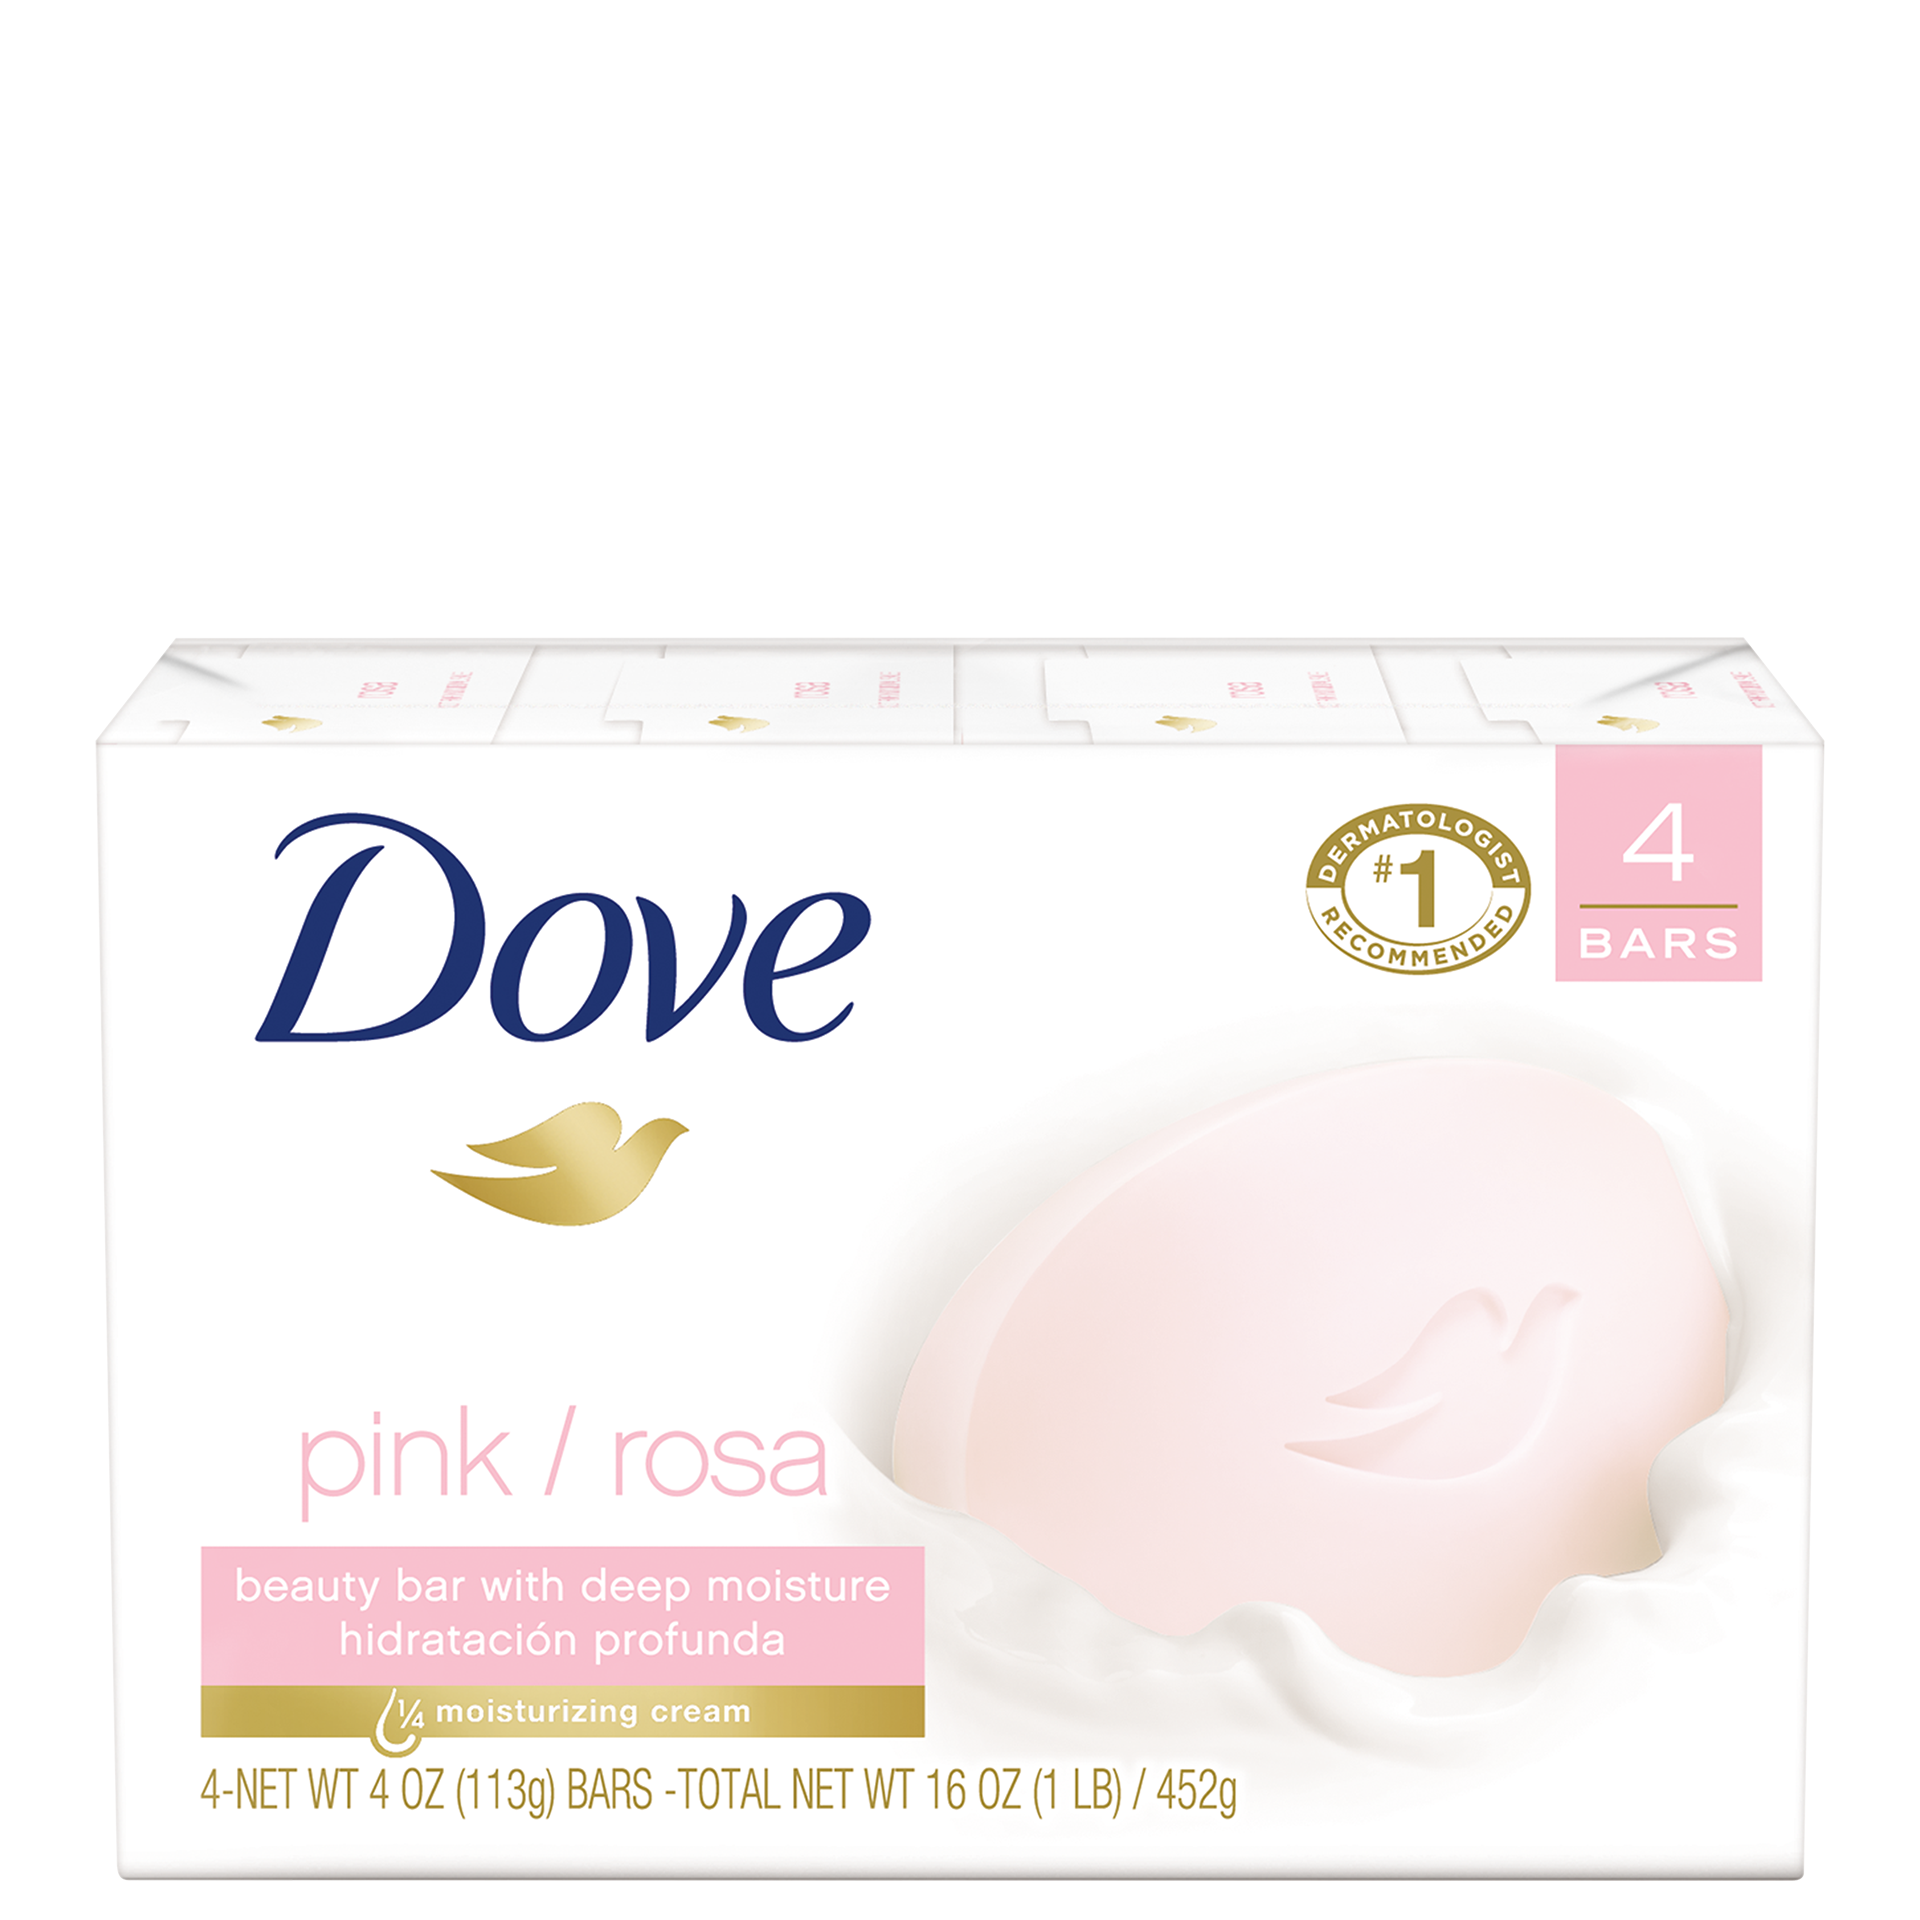 vector free download Dove Dry Oil Beauty Bar